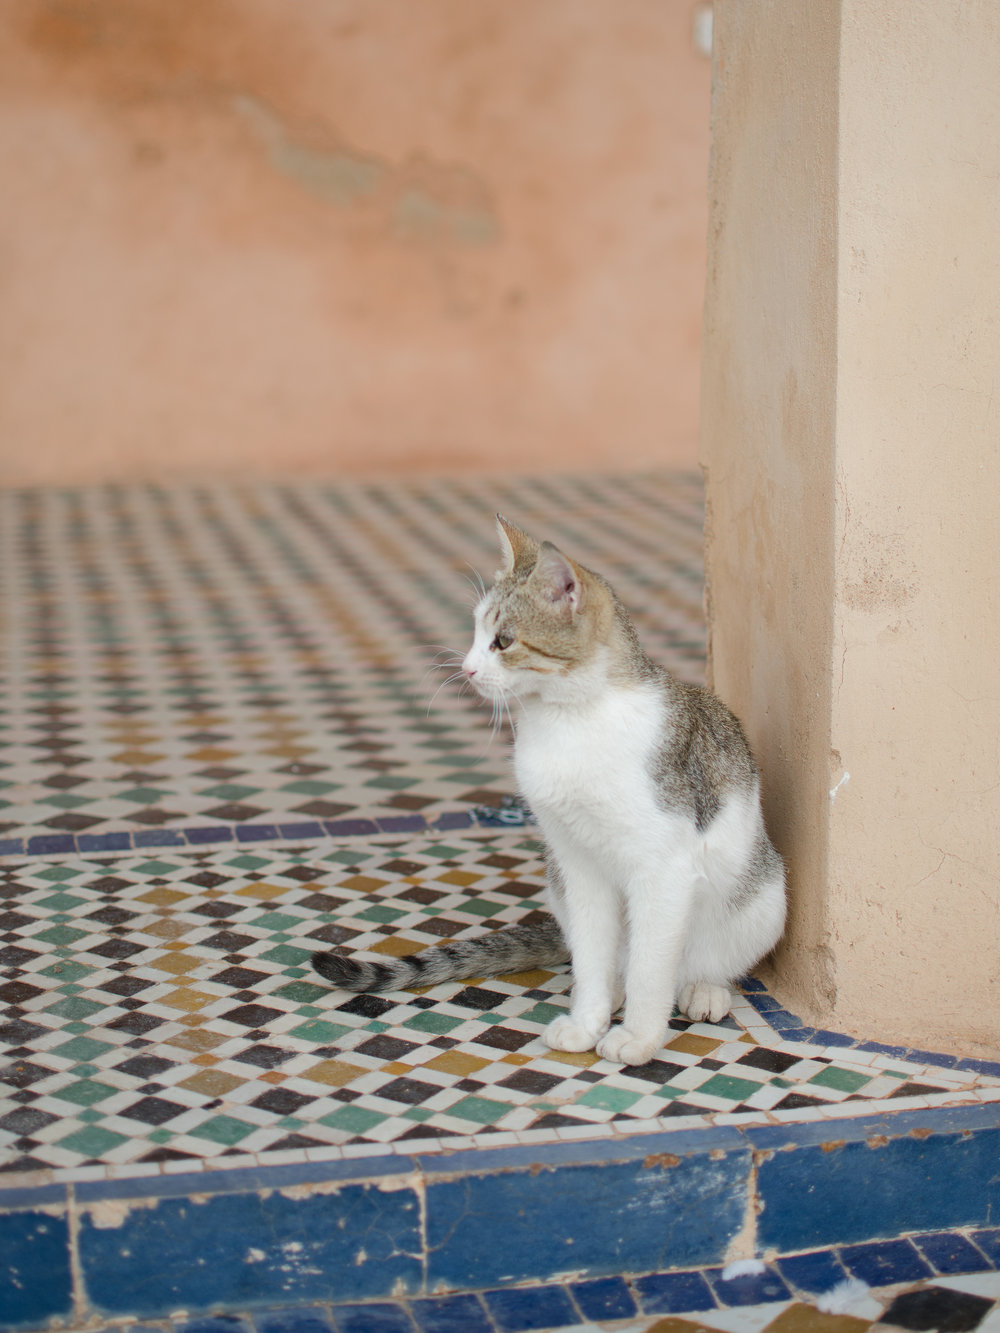 Over the course of two weeks in Morocco, I saw a lot of cute cats